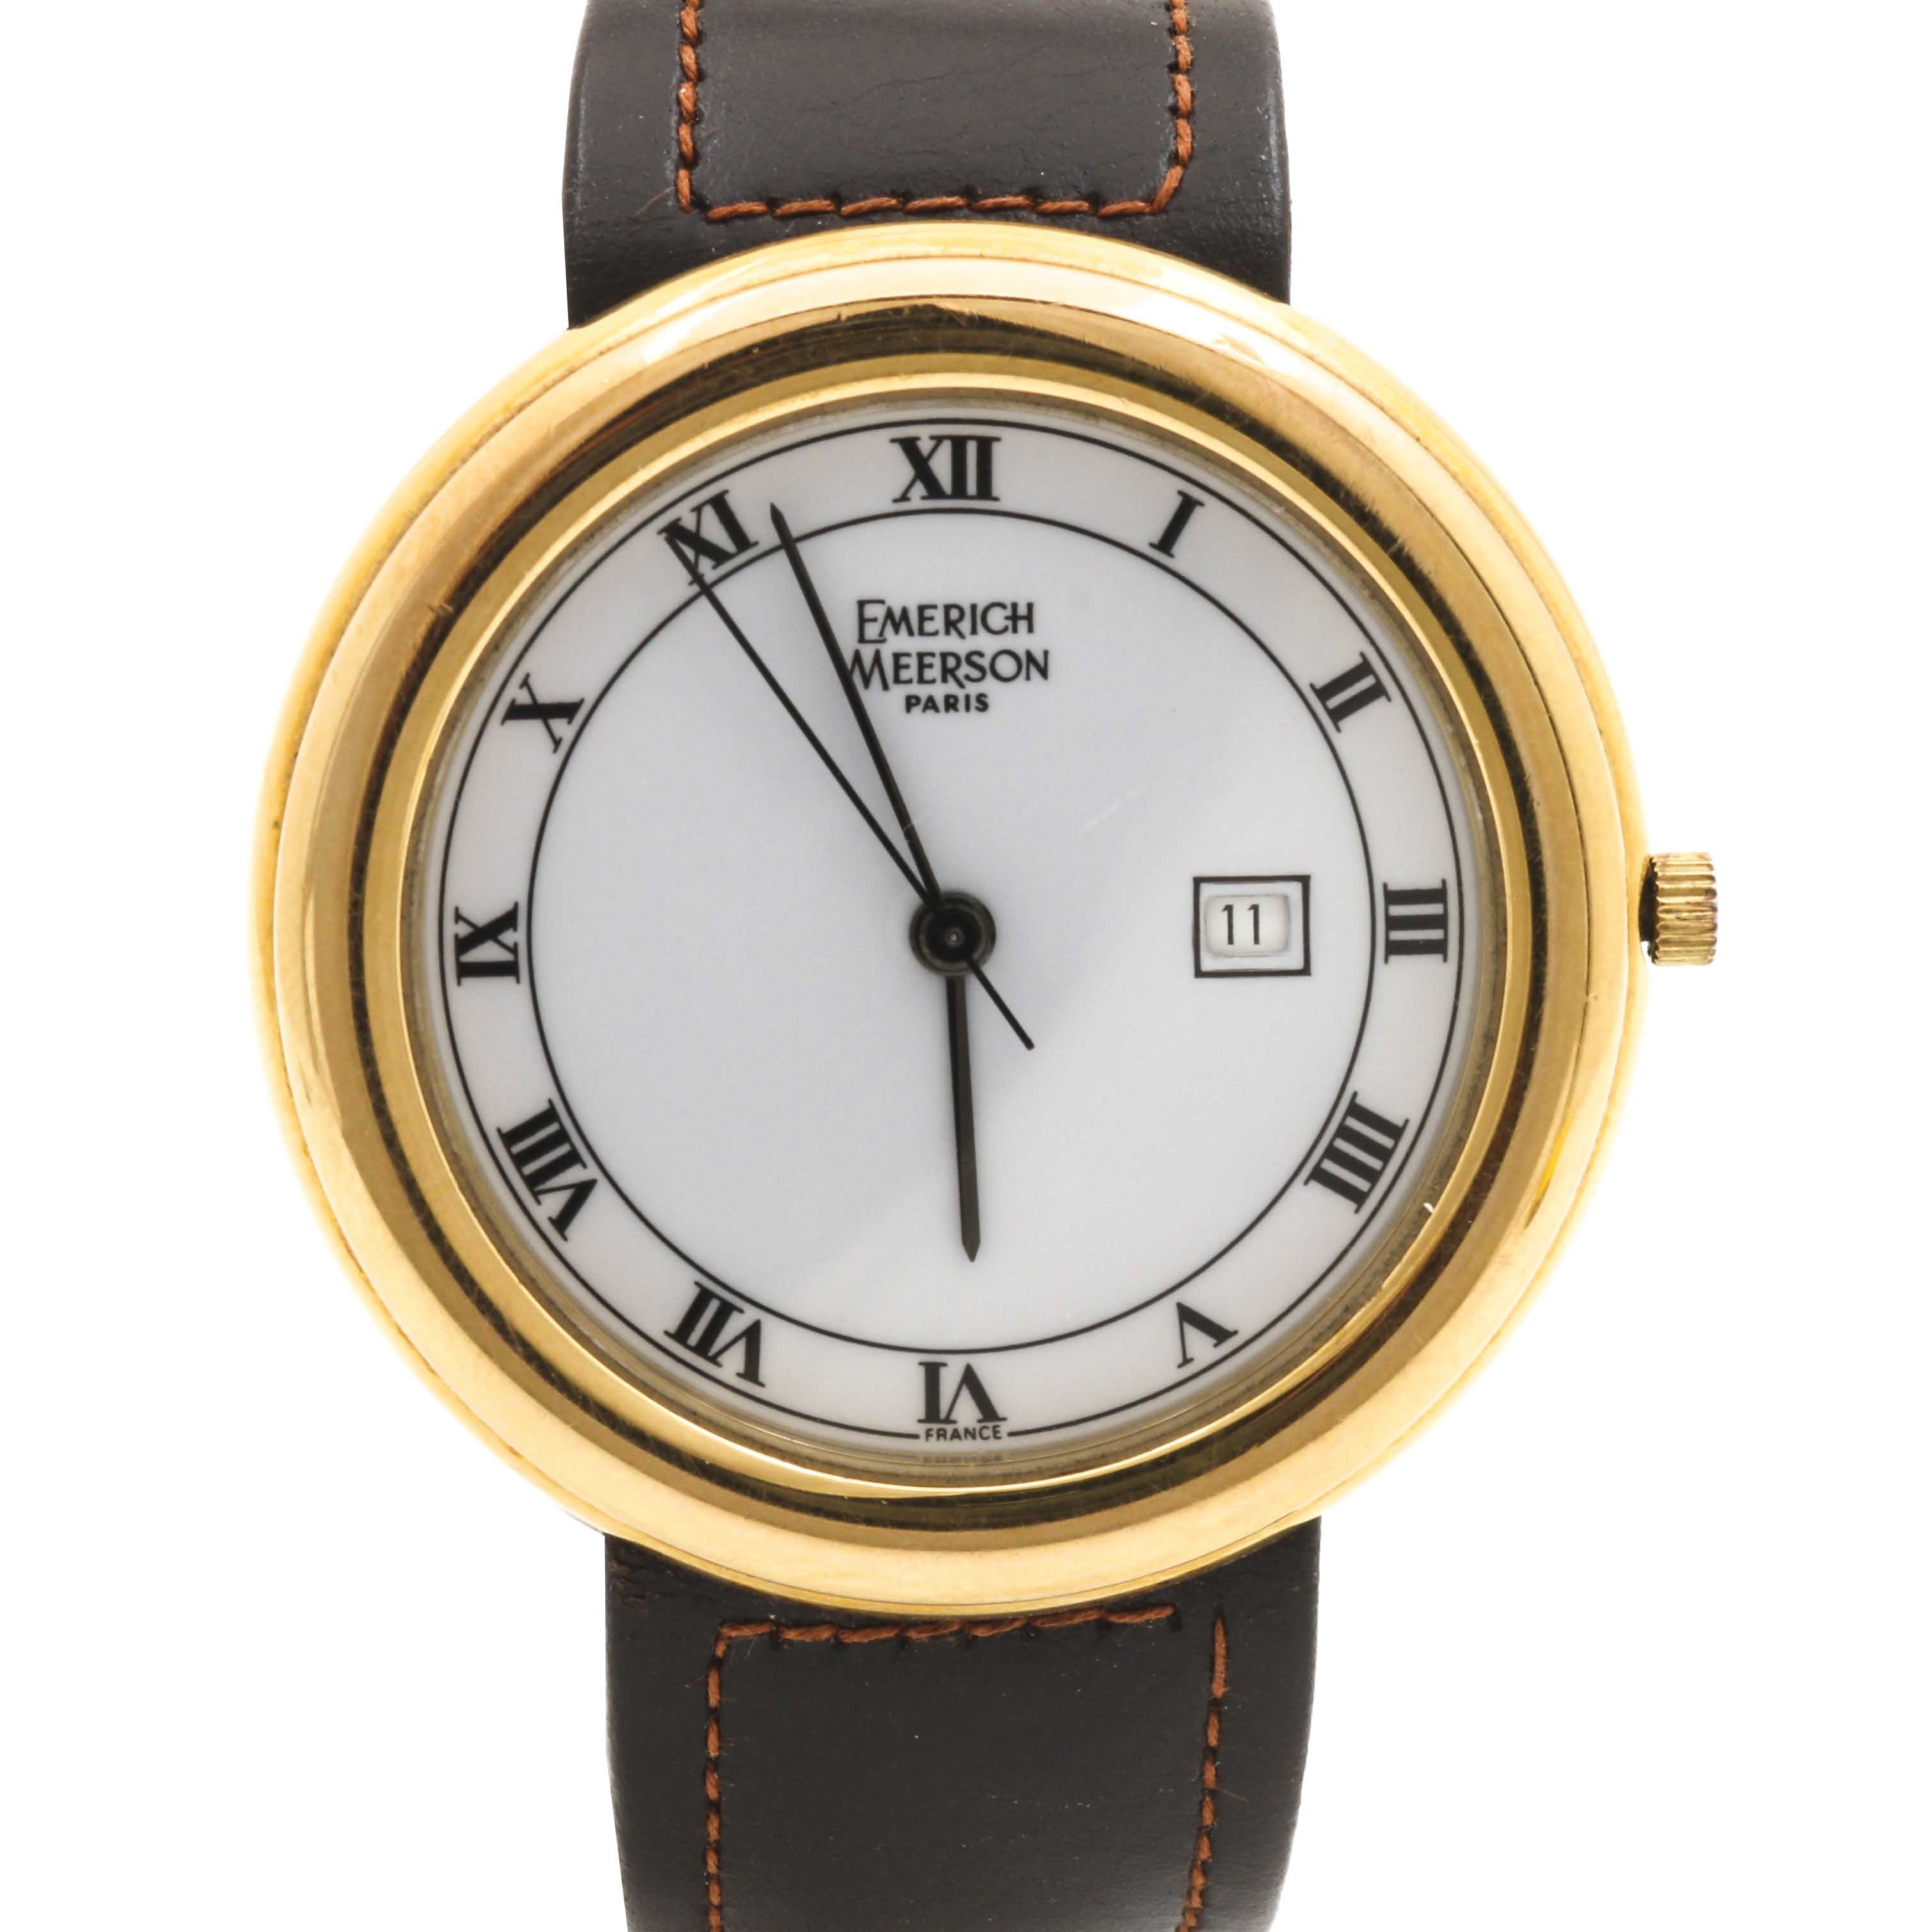 Emerich Meerson Yellow Gold Plate Stainless Steel Wristwatch